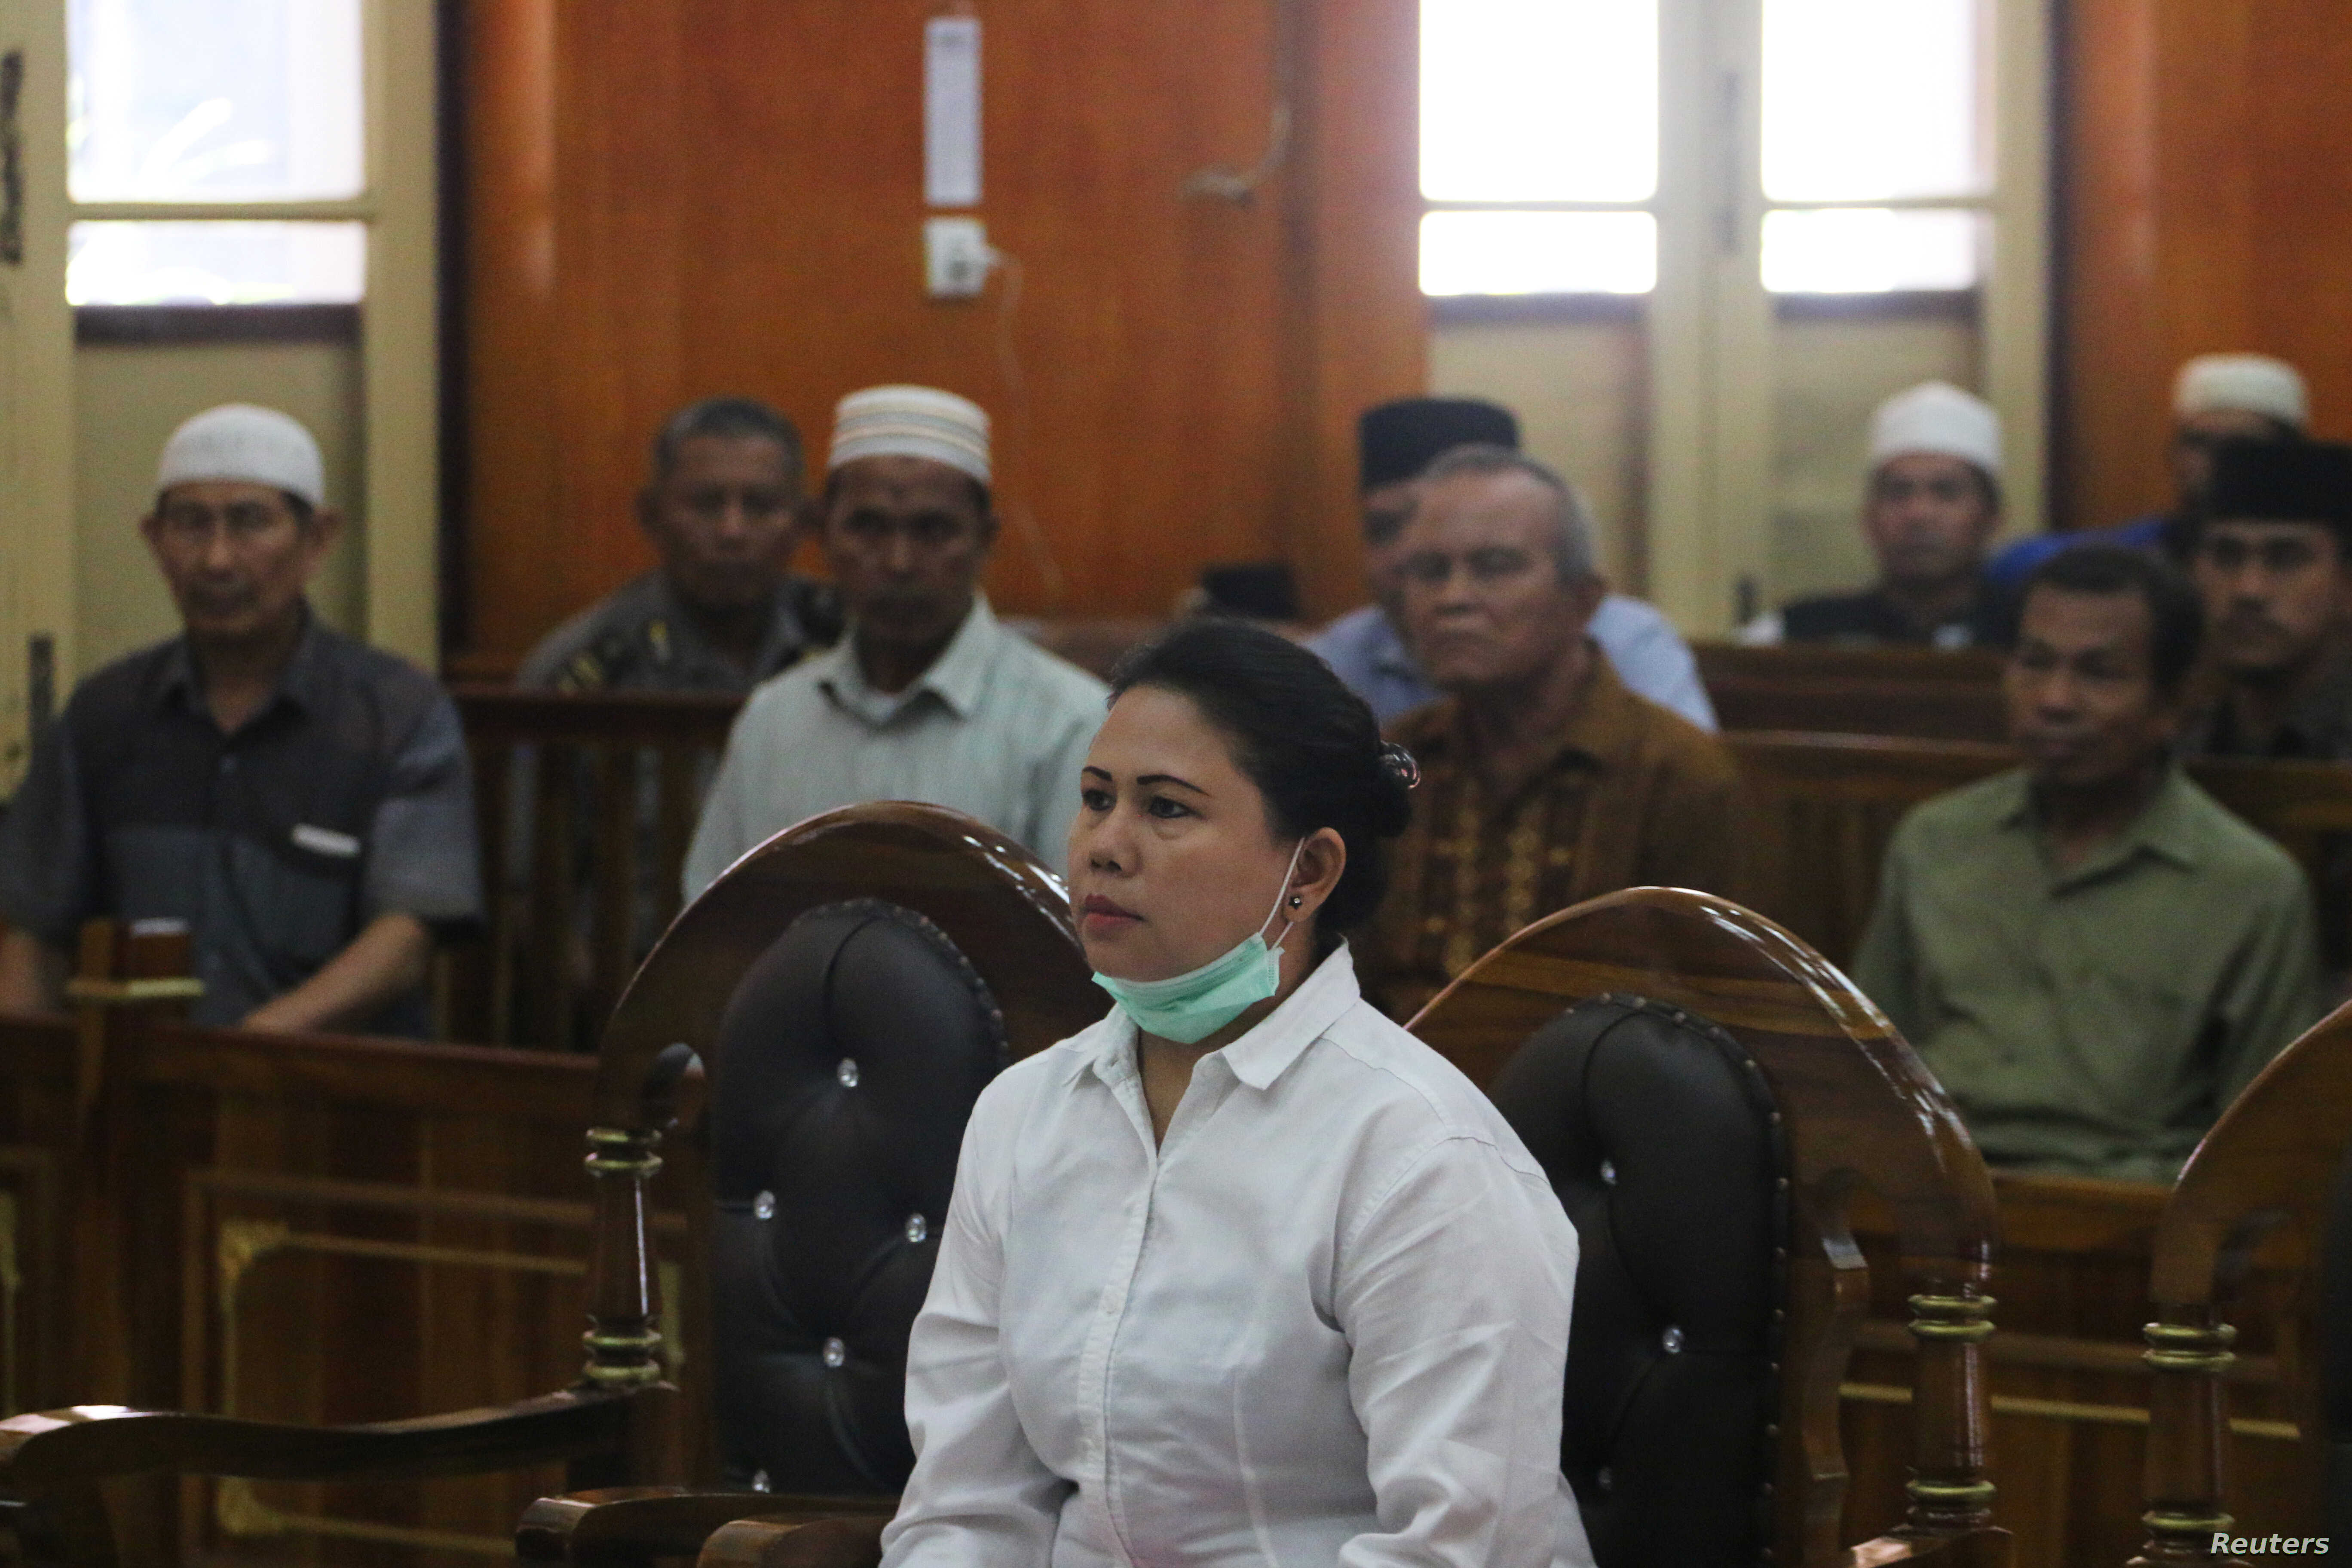 Meiliana, a 44-year-old ethnic Chinese Buddhist, sits in a courtroom for blasphemy charges, in Medan, Sumatra, Indonesia, Aug. 21, 2018.